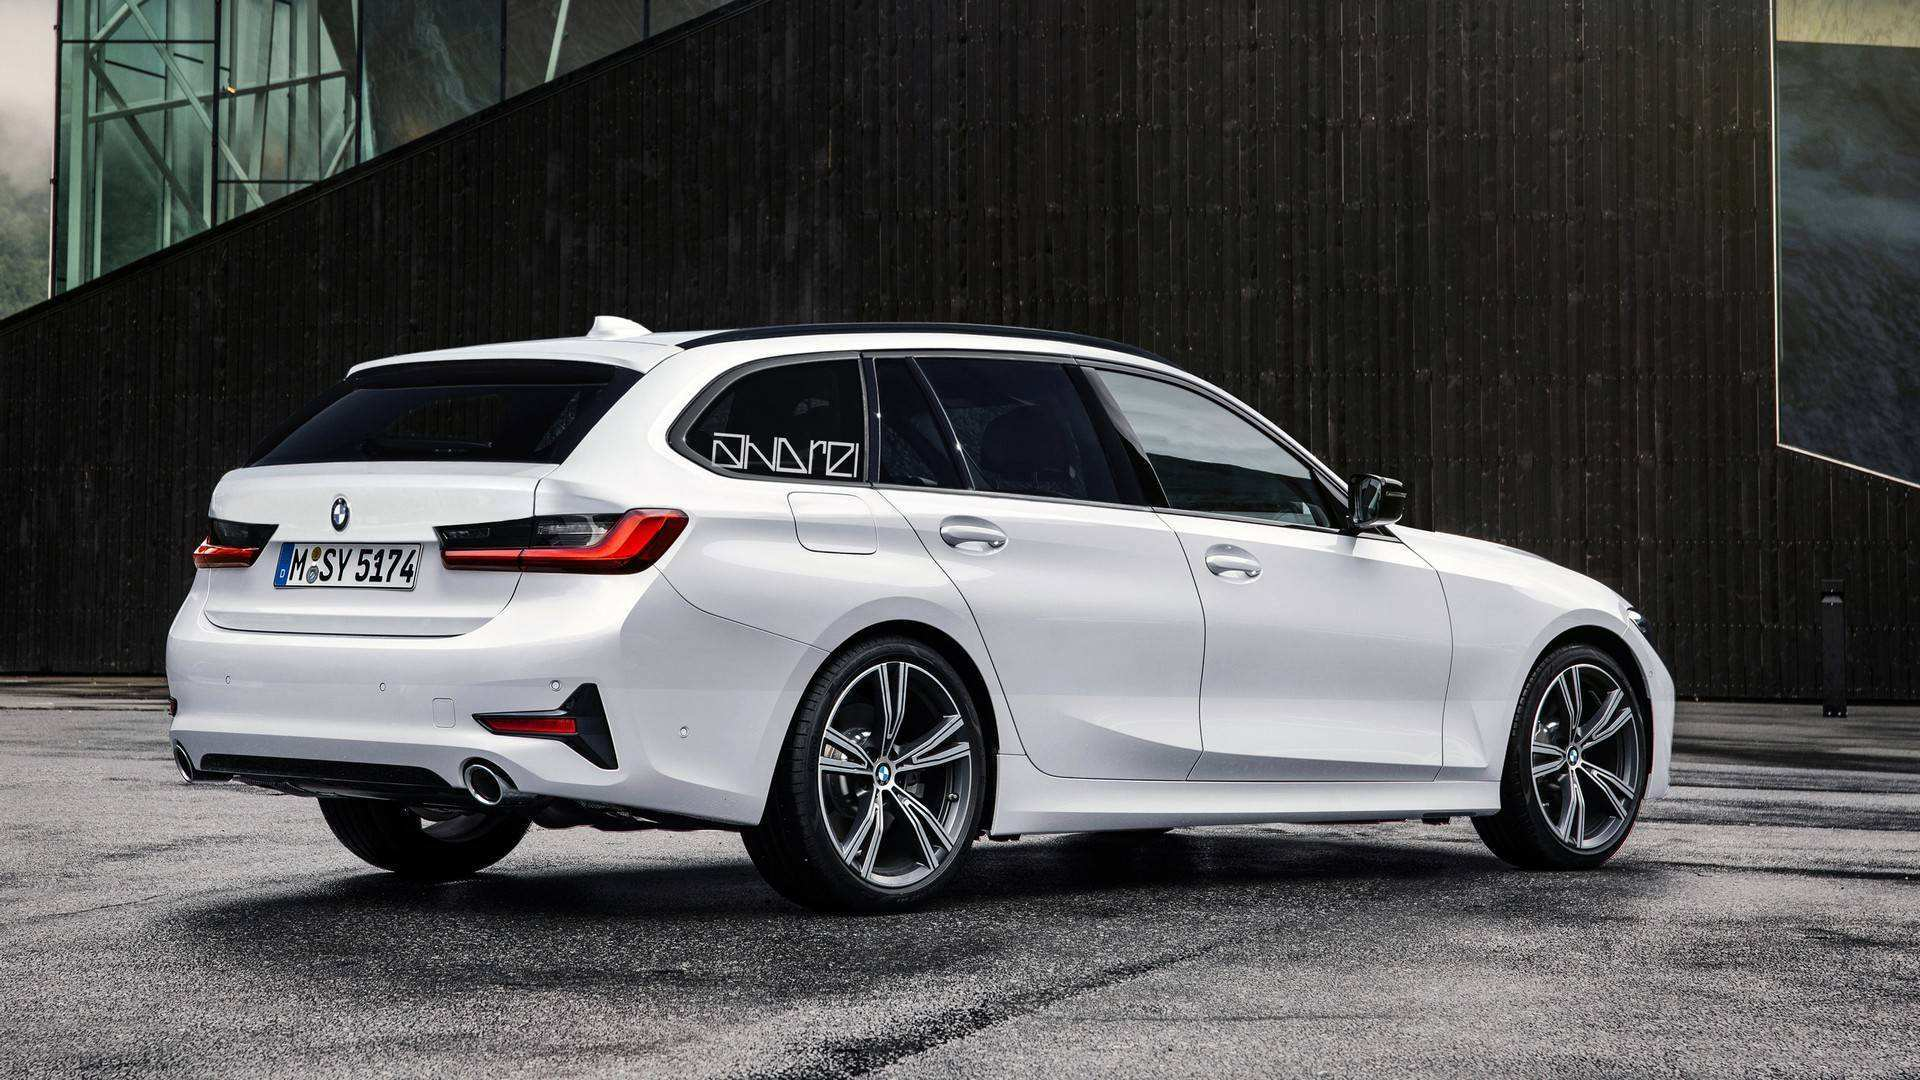 45 New New BMW 3 Series Touring 2020 Exterior